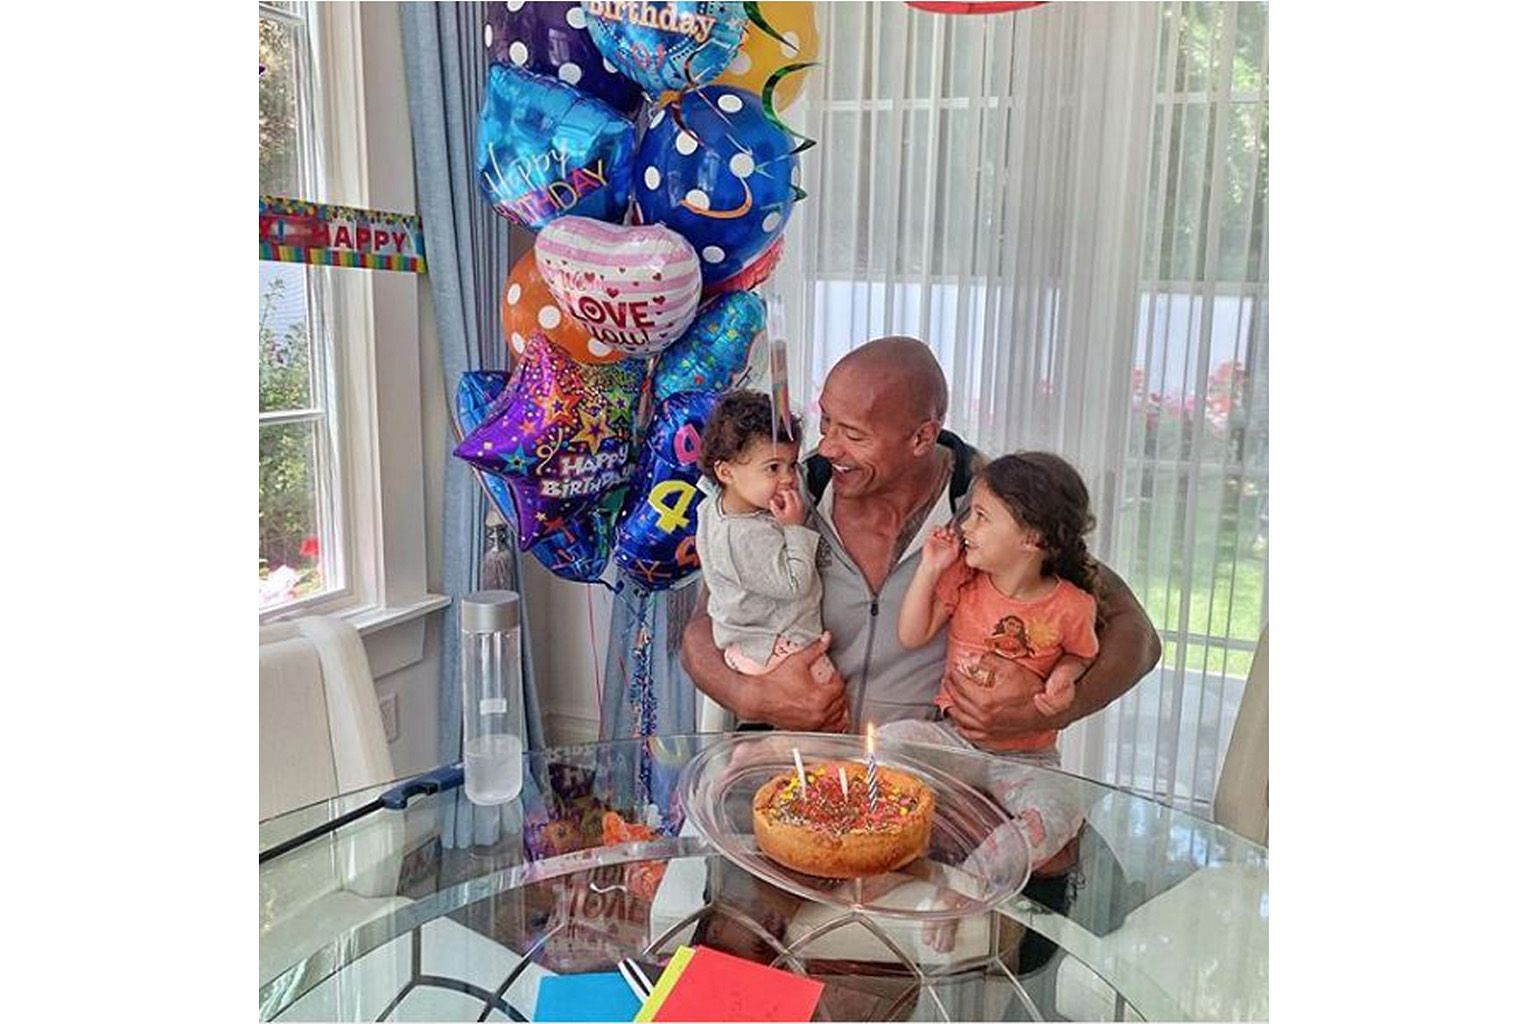 """THE ROCK BLASTED OVER DAUGHTER'S PHOTO: Netizens are throwing """"rocks"""" at Dwayne Johnson after he recently posted a photo of himself and his daughter at a swimming pool. Three-year-old Jasmine was not in a swimsuit, prompting some to question the act"""